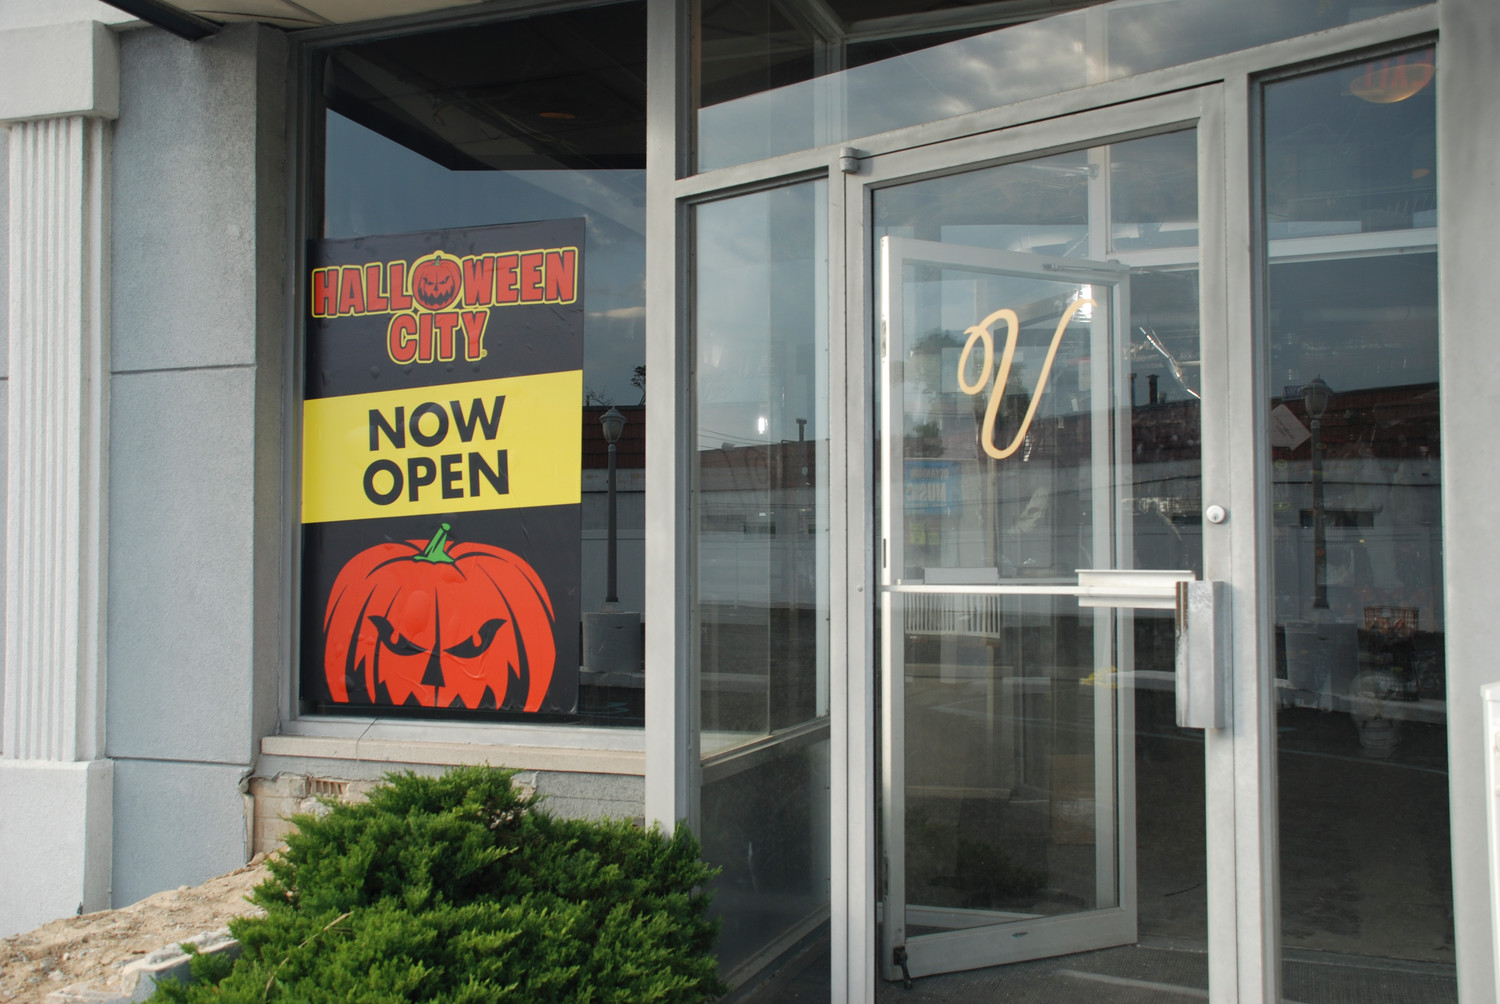 the vanellas v has yet to be removed from what is now a - Halloween City Corporate Phone Number